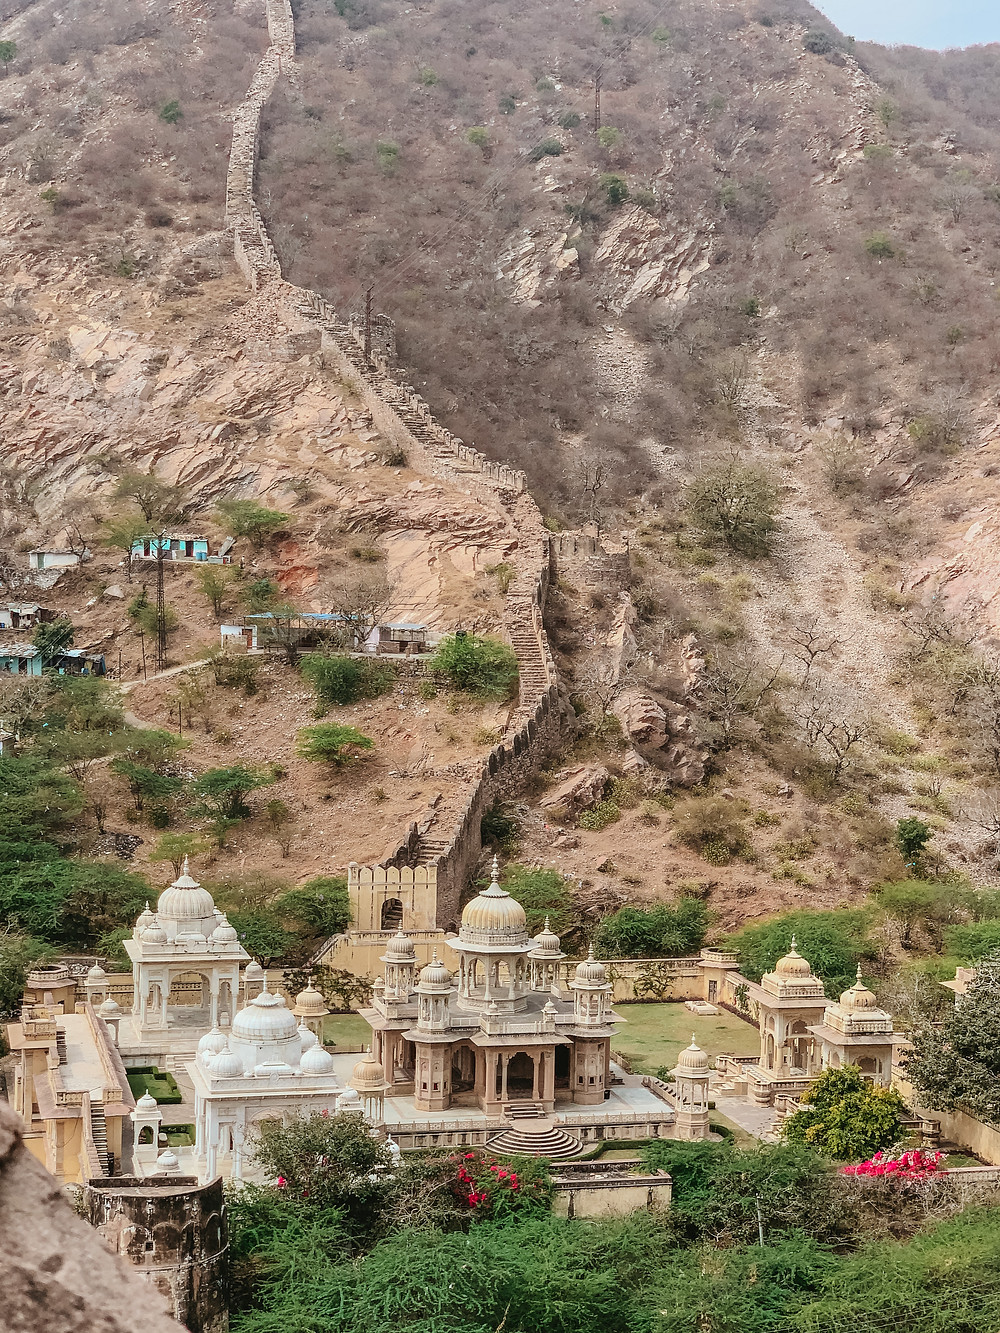 Situated in the foothills of the Nahargarh (Tiger) Fort, sits Gaitore Ki Chhatriyan. Gaitore Ki Chhatriyan is a collection of royal tombs for the Kachwaha, a Rajput clan that ruled in the area. There is a cenotaph for each of the popular maharajas cremated there, made of either sandstone or marble, topped with umbrella-shaped domes called a chhatri. The grounds are surrounded by hills and see very few visitors. It is a very peaceful and stunning site to photograph. The entry fee is 30 rupees. Keep an eye on your belongings as there are monkeys about!